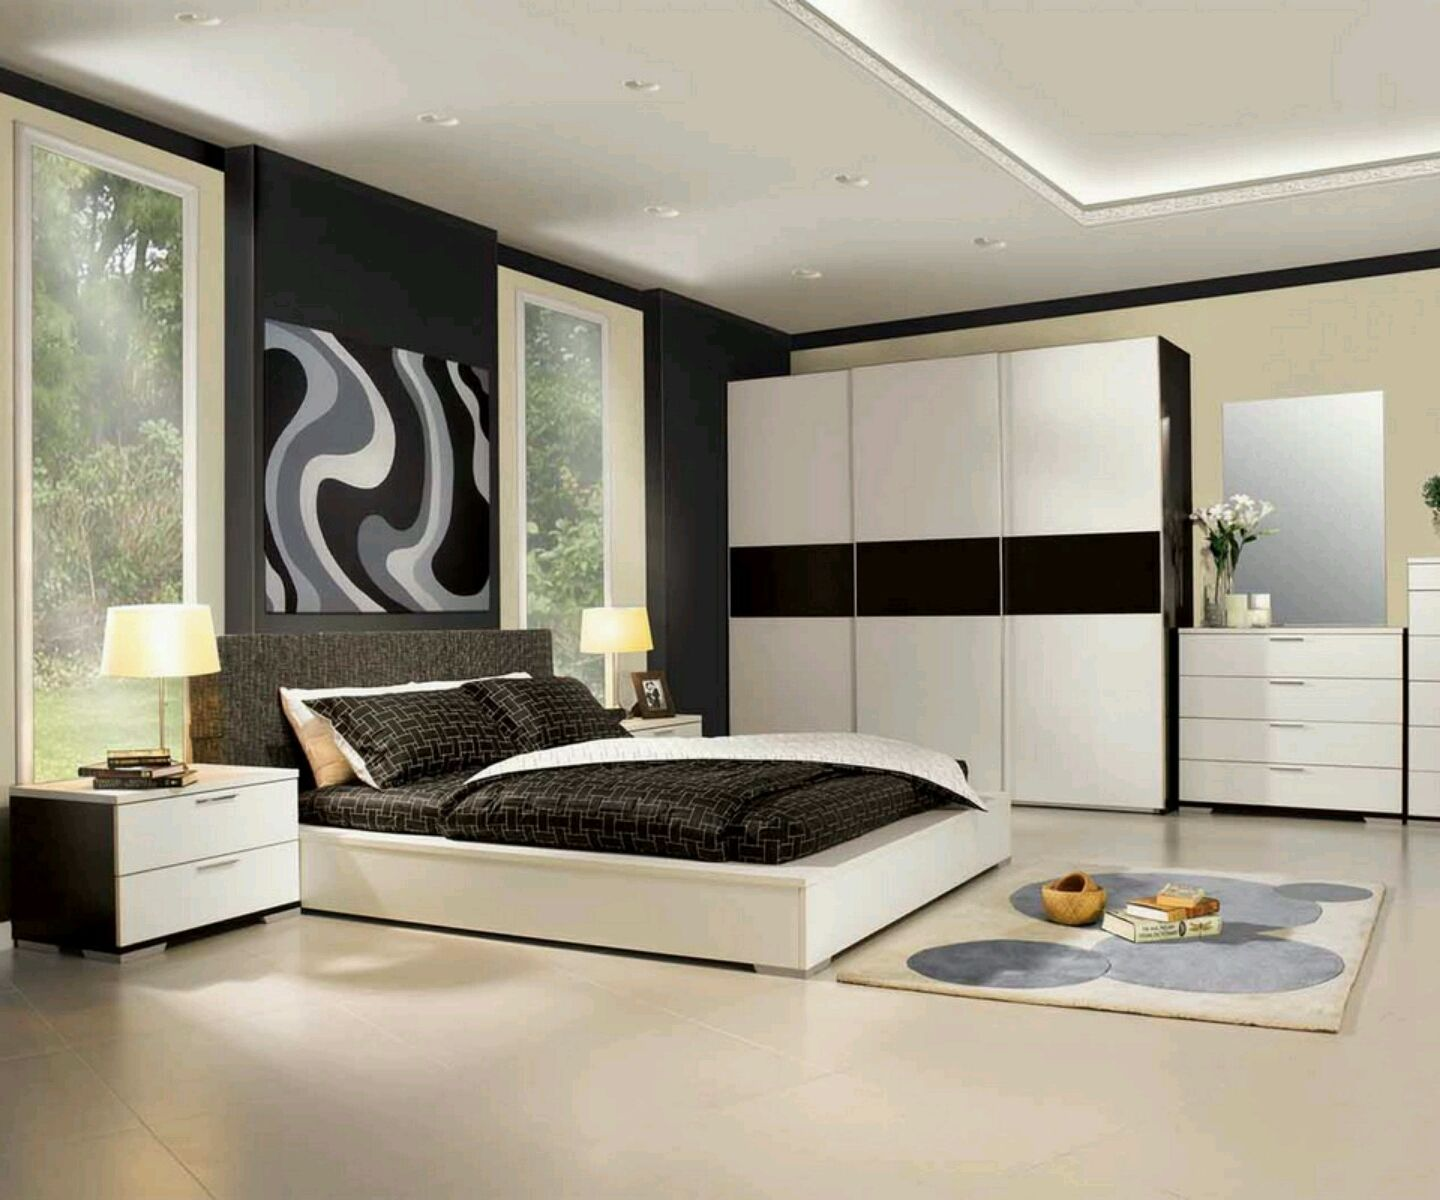 Modern Bedroom Furniture Design For more pictures and design ideas ...